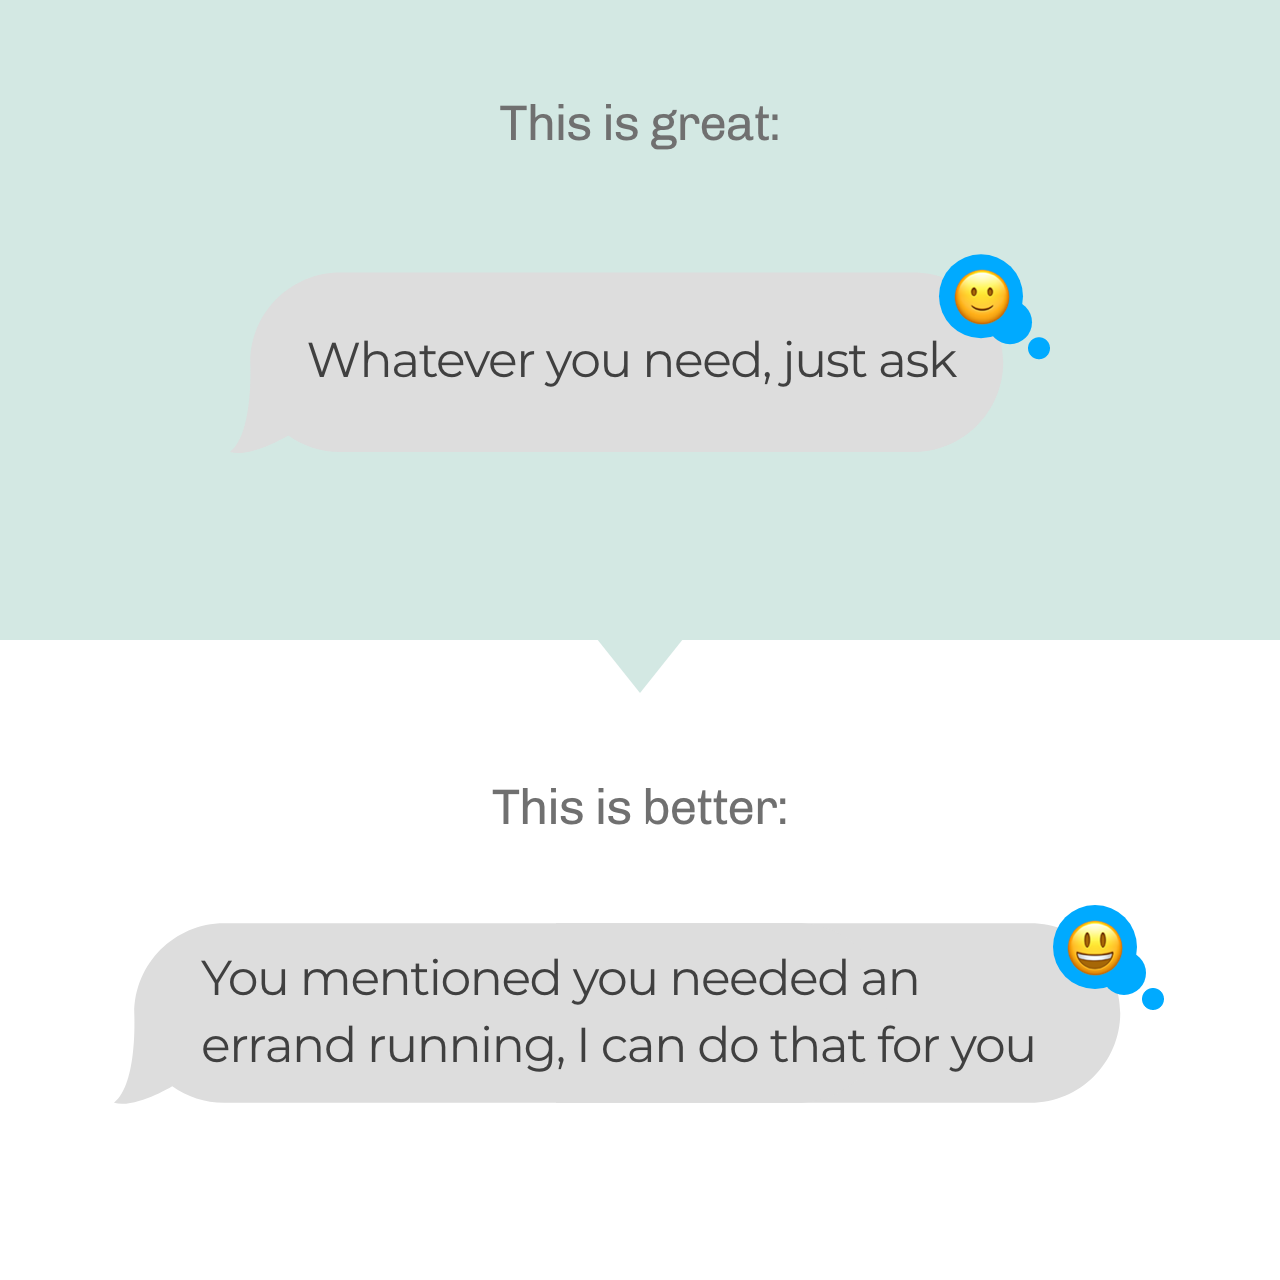 """An image of a text message conversation. The first message says """"Whatever you need, just ask"""" and a small smiling emoji face. The second says, """"You mentioned you needed an errand running, I can do that for you"""" with a smiling emoji. This illustrates how to frame your conversations in a more constructive way"""